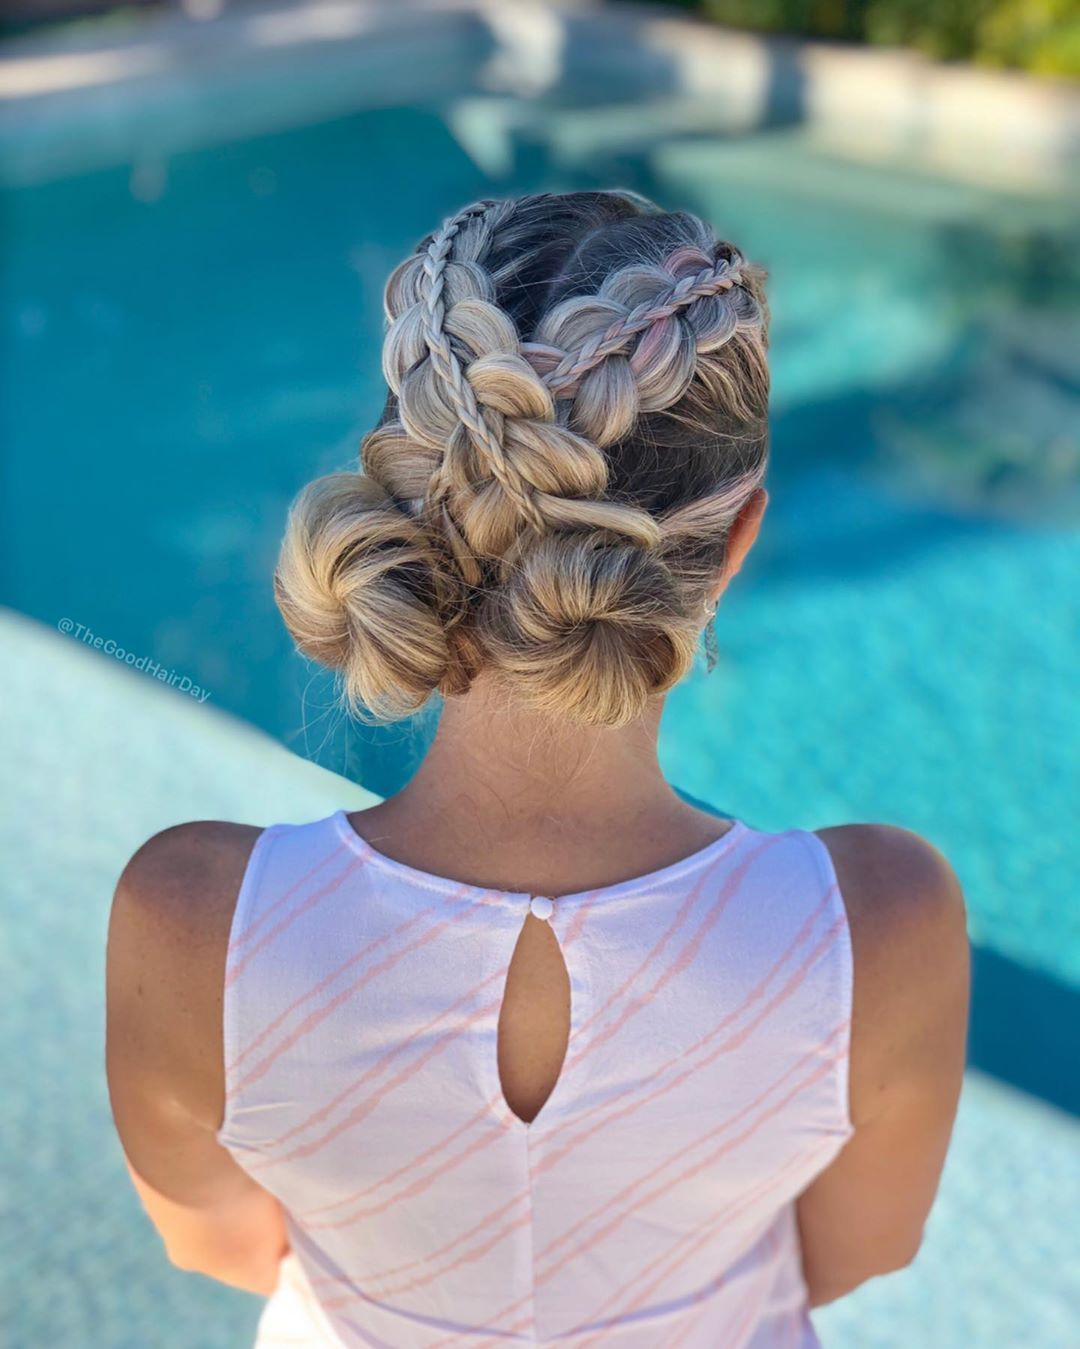 Criss Cross Stacked Braids Into Space Buns Braided Hairstyles French Braid Hairstyles Hair Styles